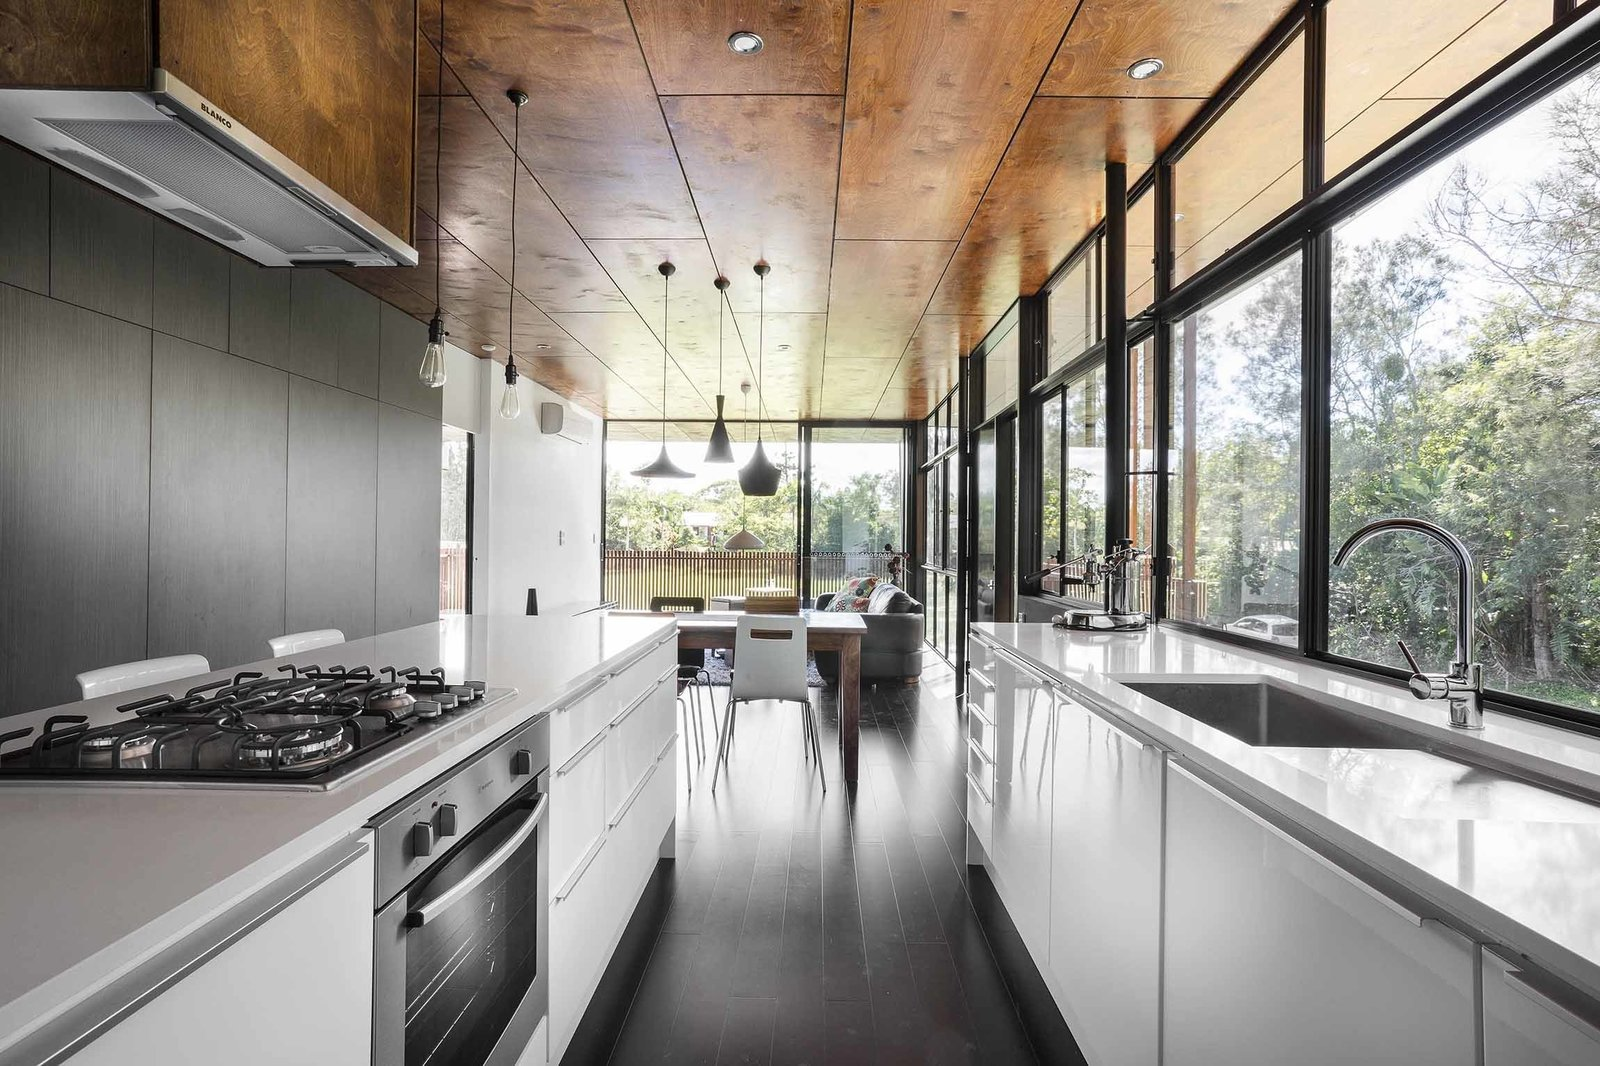 In the kitchen, a Blanco exhaust fan is surrounded by a stove, oven, and dishwasher by Westinghouse. A series of pendants by She Lights are equipped with LED fittings. Tagged: Kitchen, White Cabinet, Pendant Lighting, Range, and Undermount Sink. Northern Rivers Beach House by Tiffany Jow